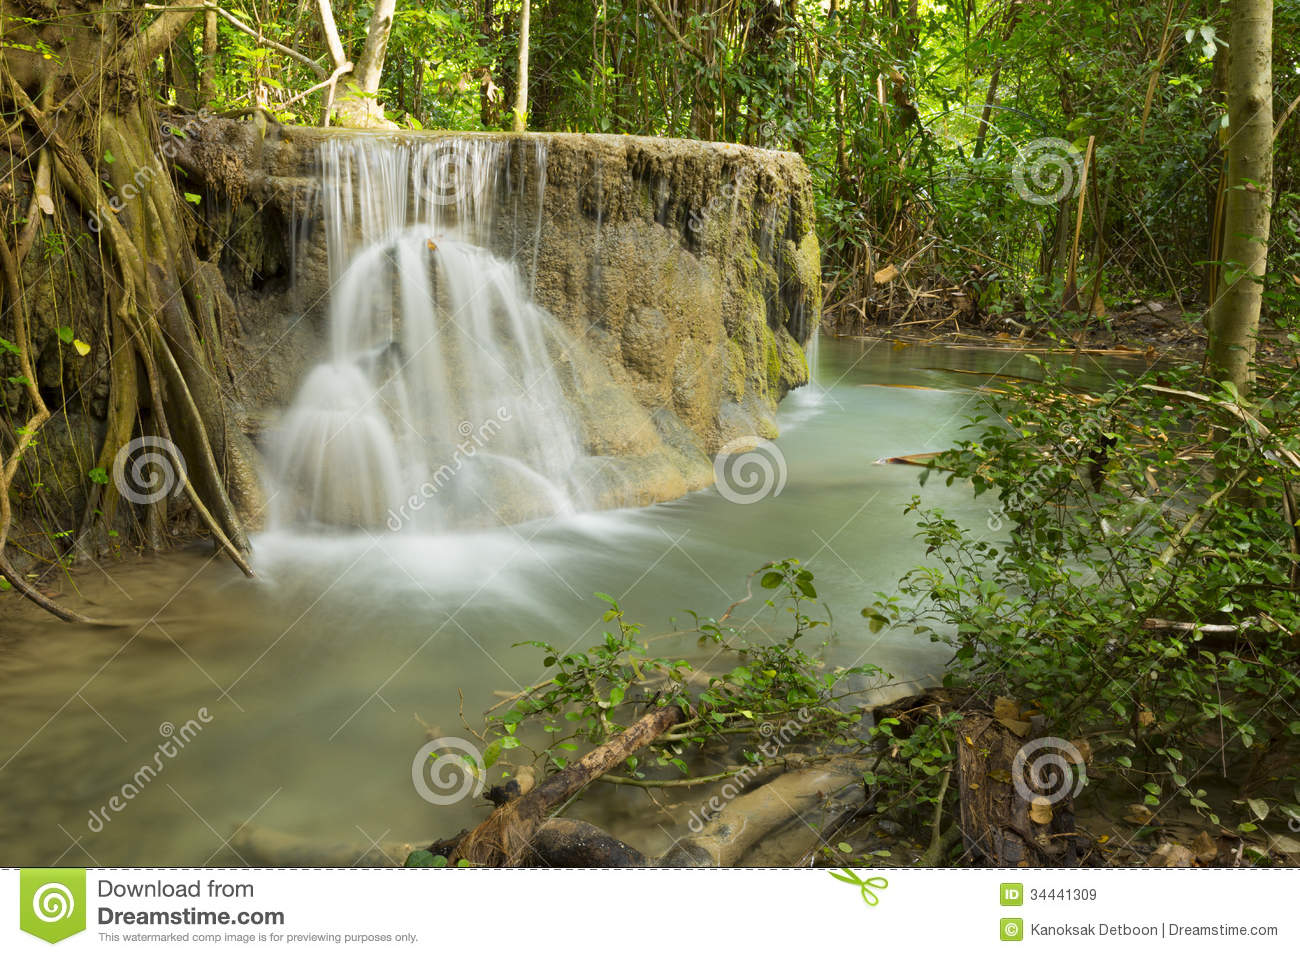 Waterfall beautiful scenery in the tropical forest